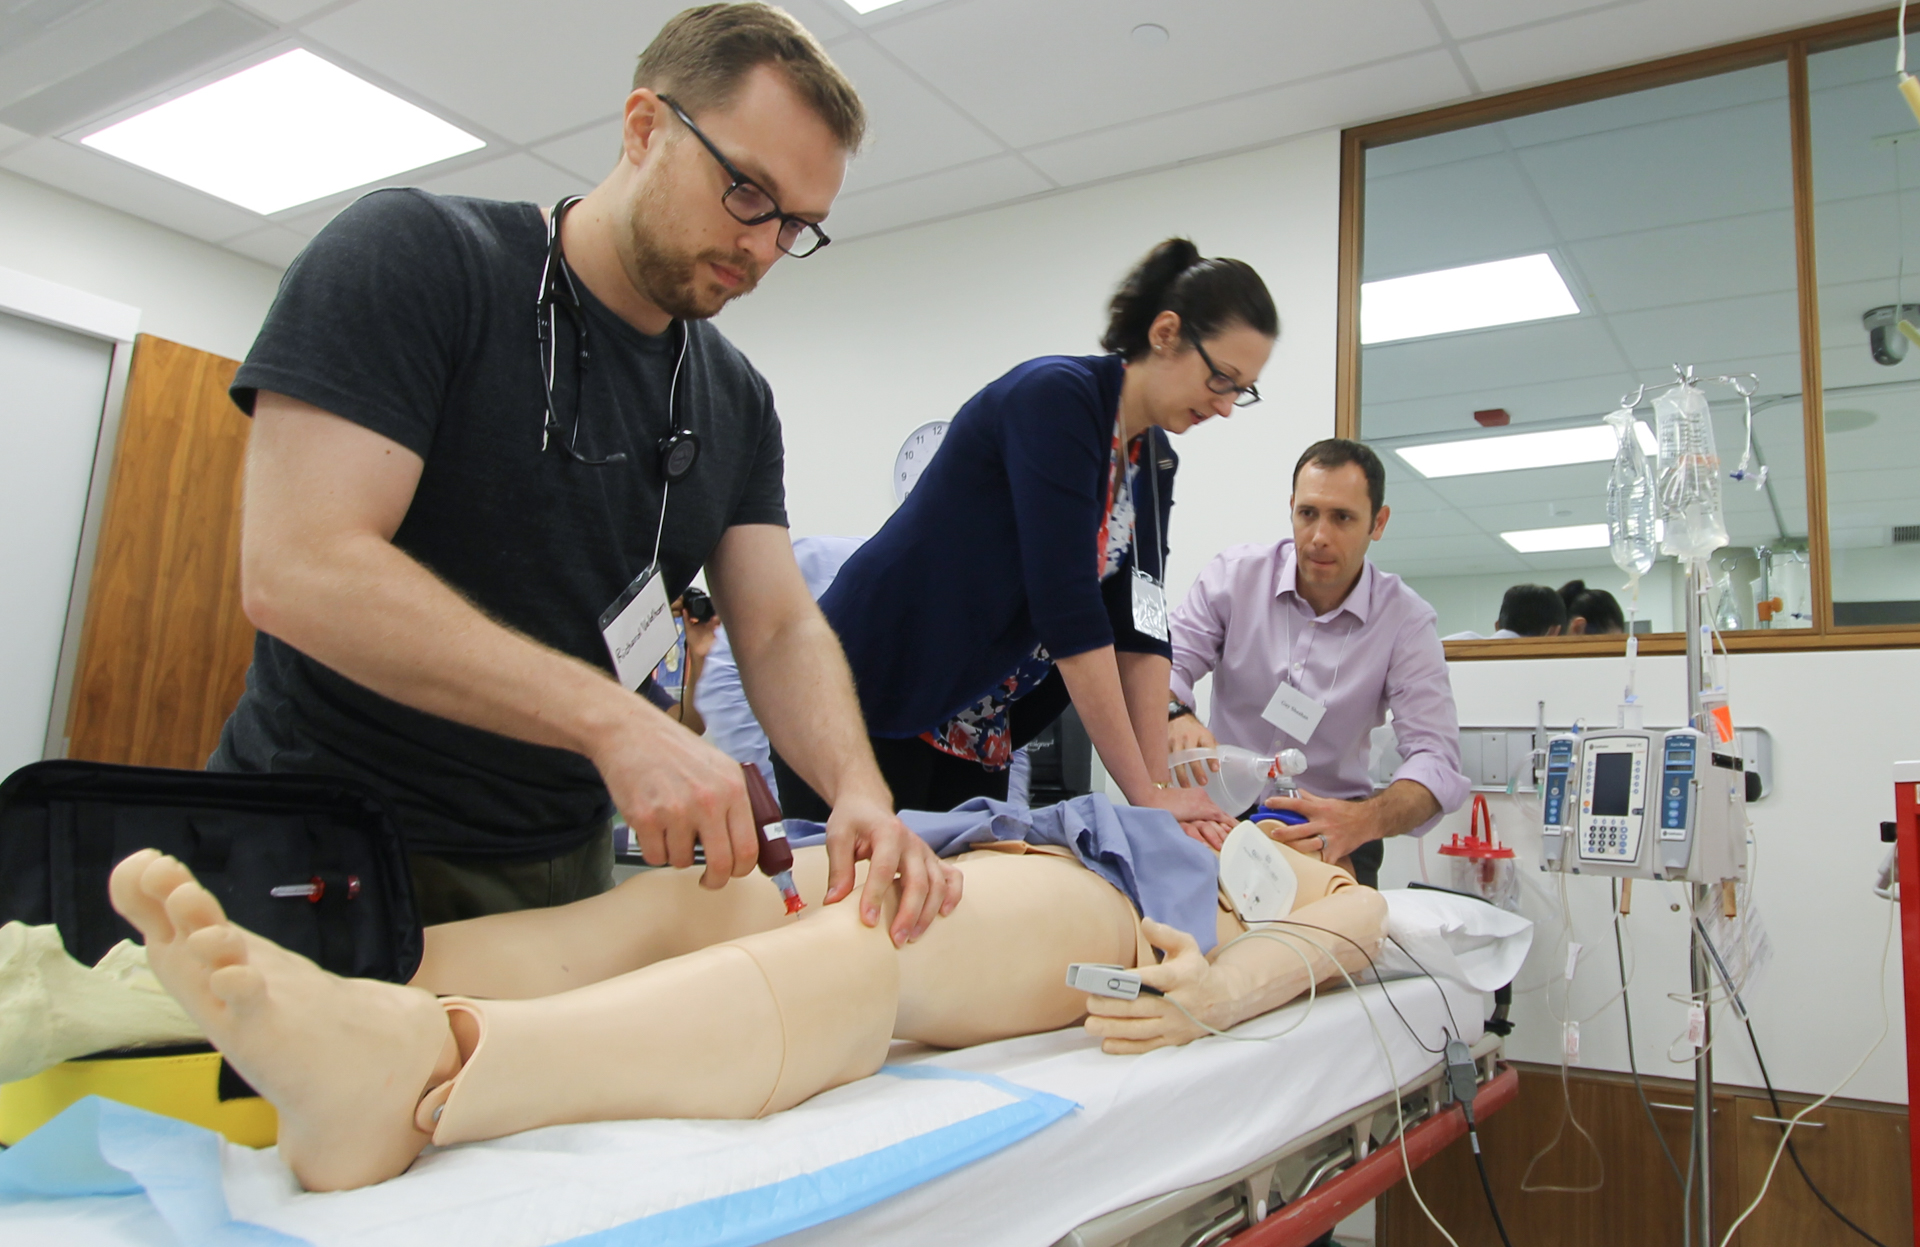 Graduate Students Medical Education